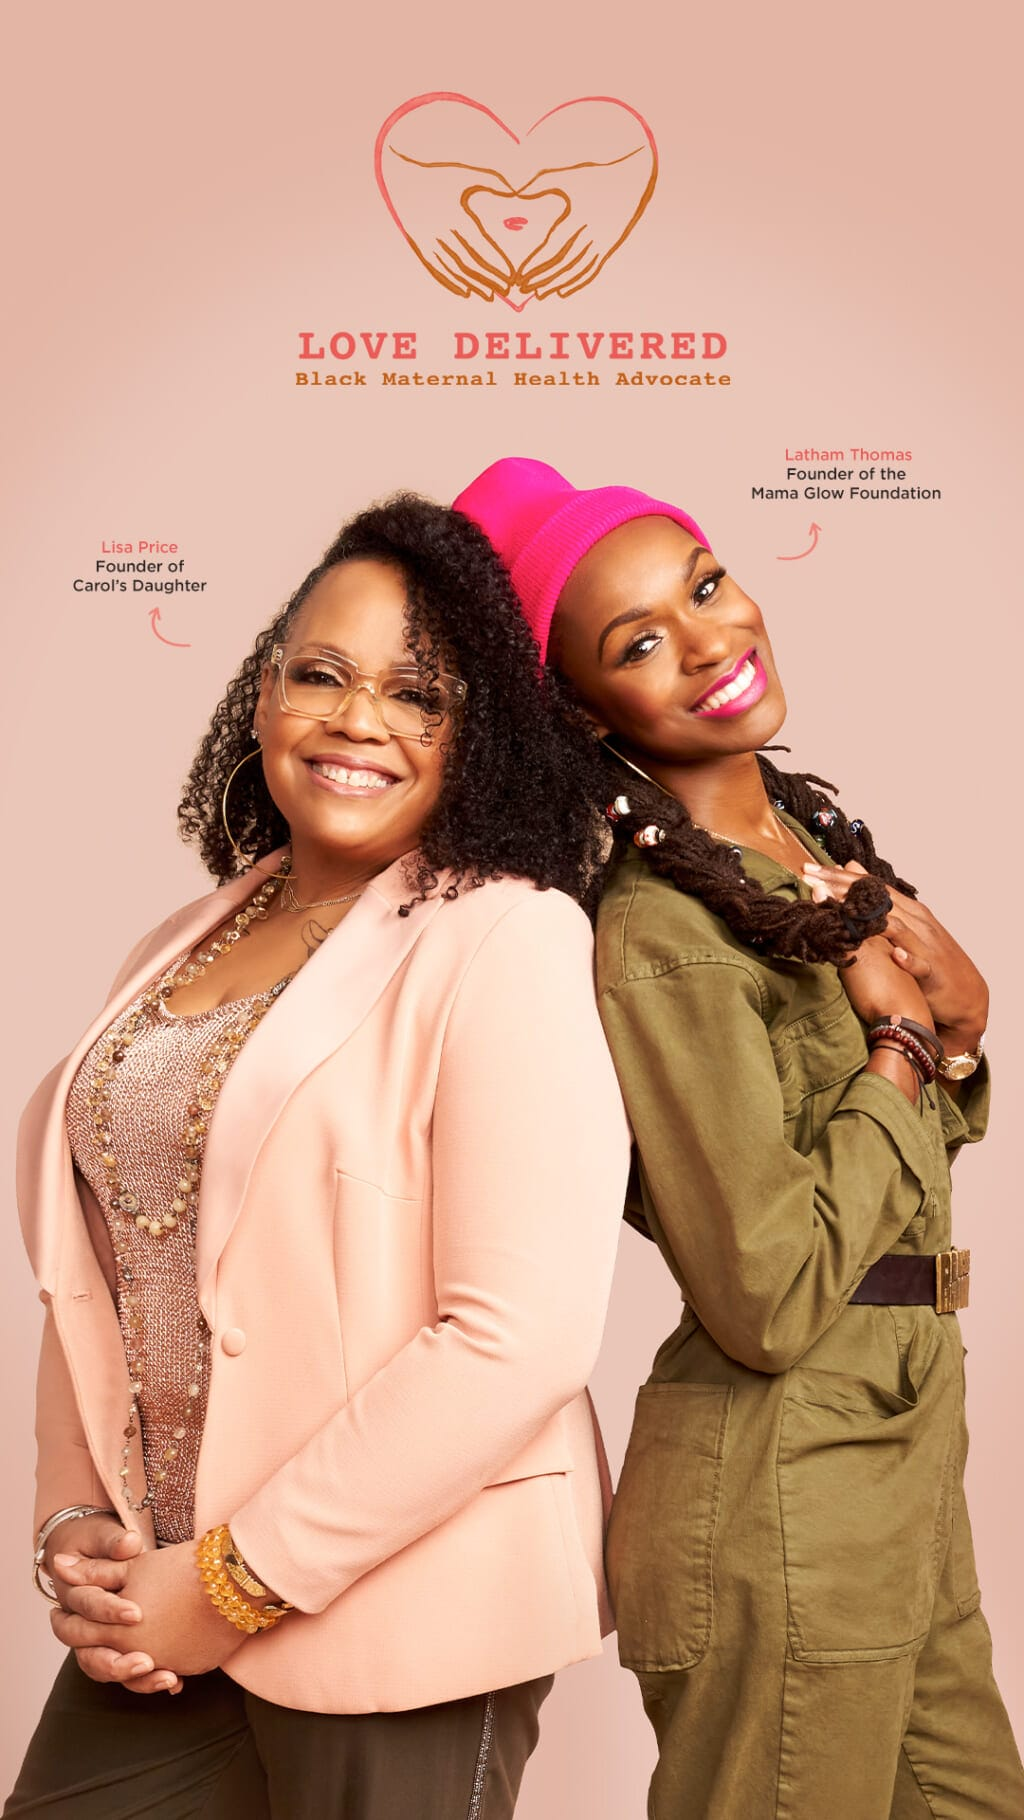 Love Delivered aims to educate and empower expectant Black women